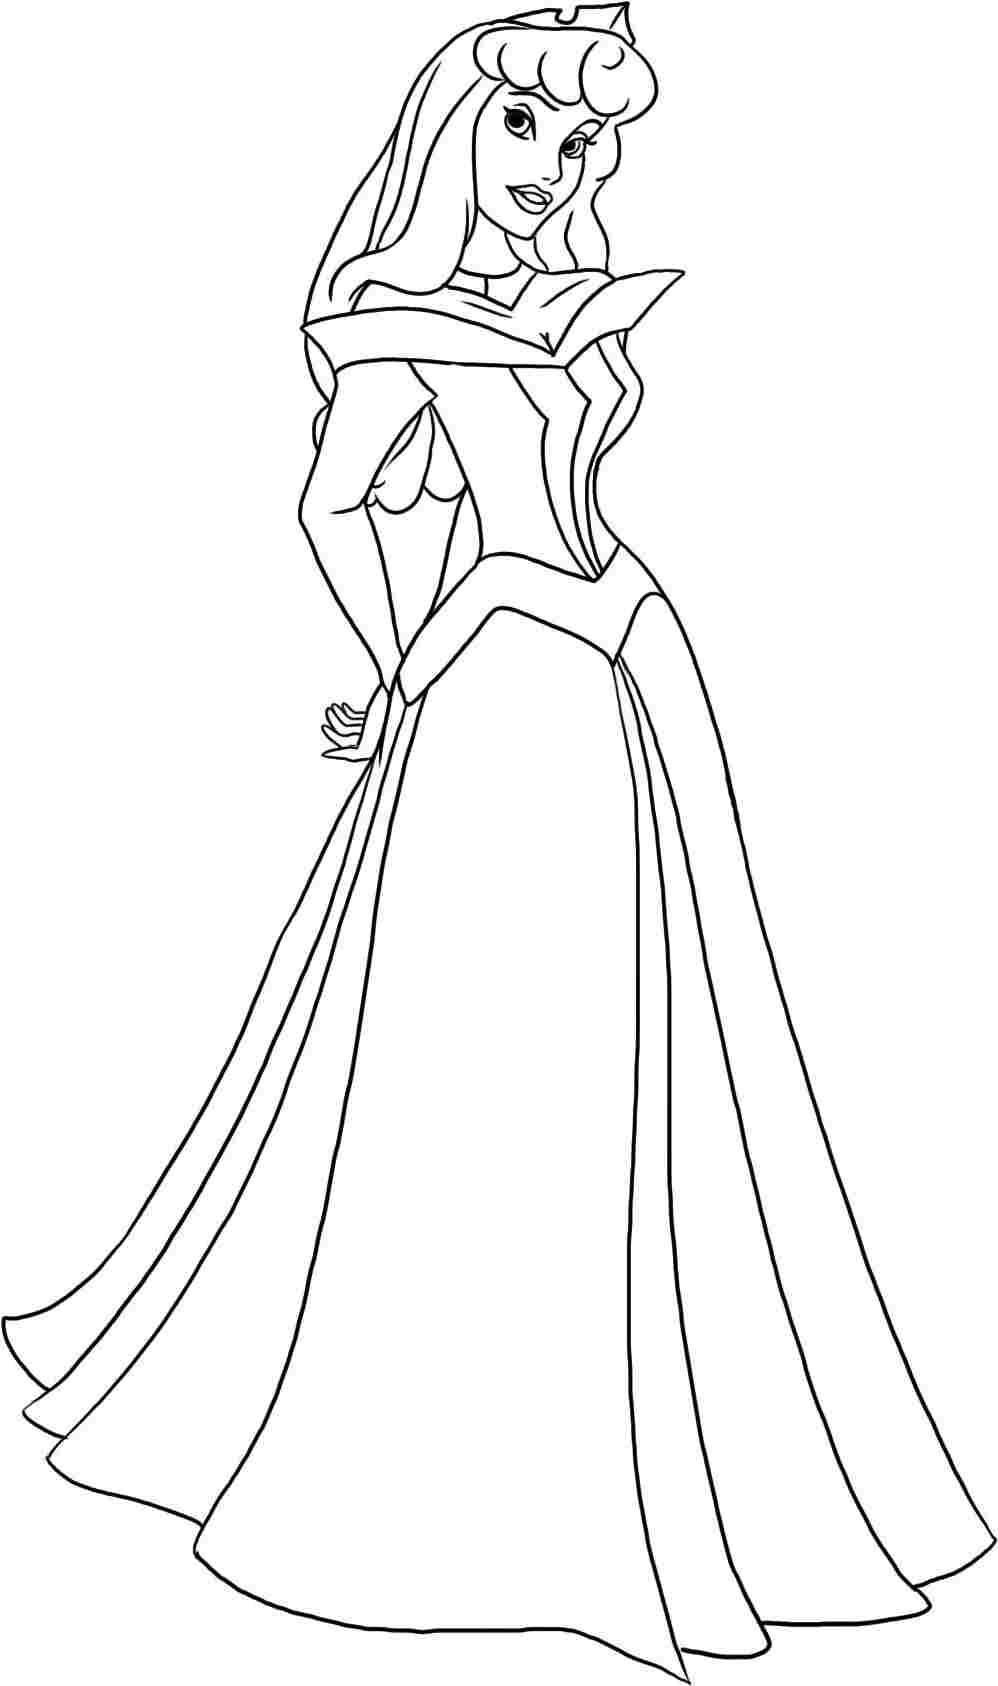 princess aurora pictures to color coloring pages princess aurora free printable coloring pages to pictures color princess aurora